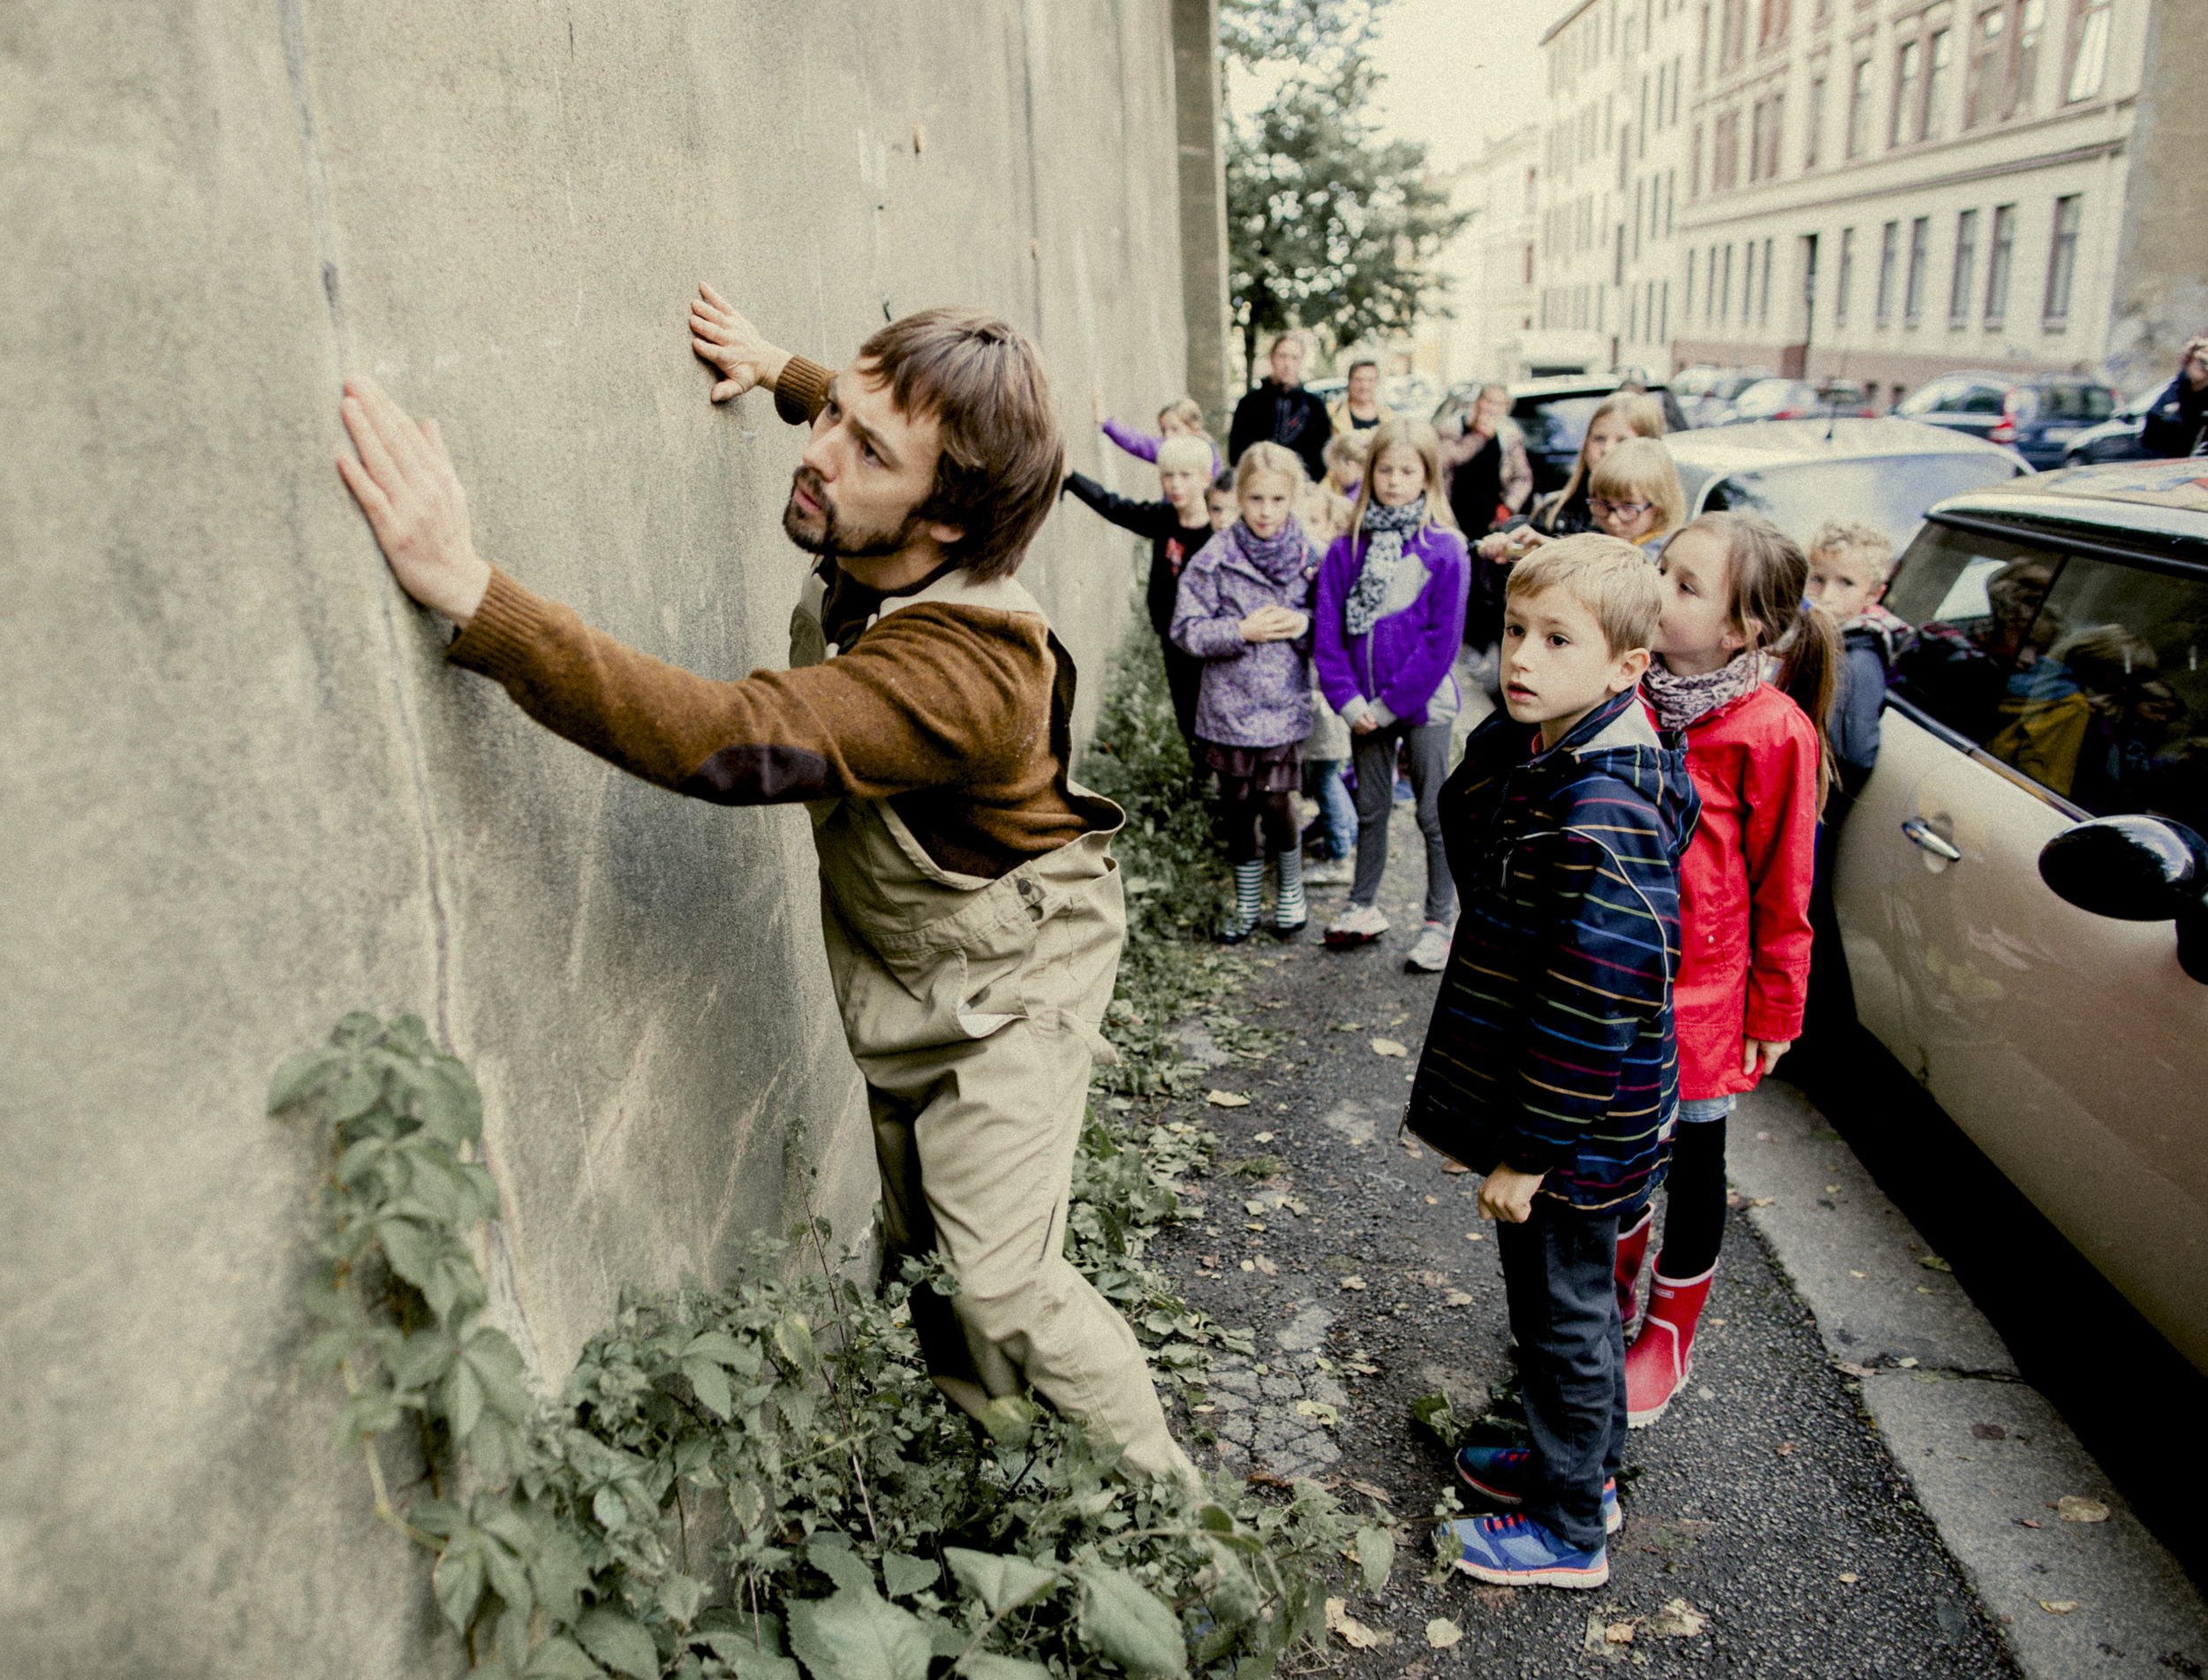 STASJON75 / Oslo   -communitity performance, Adamstuen-Oslo   with Gaute Askild Næsheim and Lasse Valdal.   The formerly emptiest point in the neighborhood has its very own performance, specifically made for this spot in particular, especially for 8-9 year olds.    Conceived and directed by Claire de Wangen - Photography: Morten Bendiksen    #clairedewangen #performance #oslo #adamstuen #mortenbendiksen